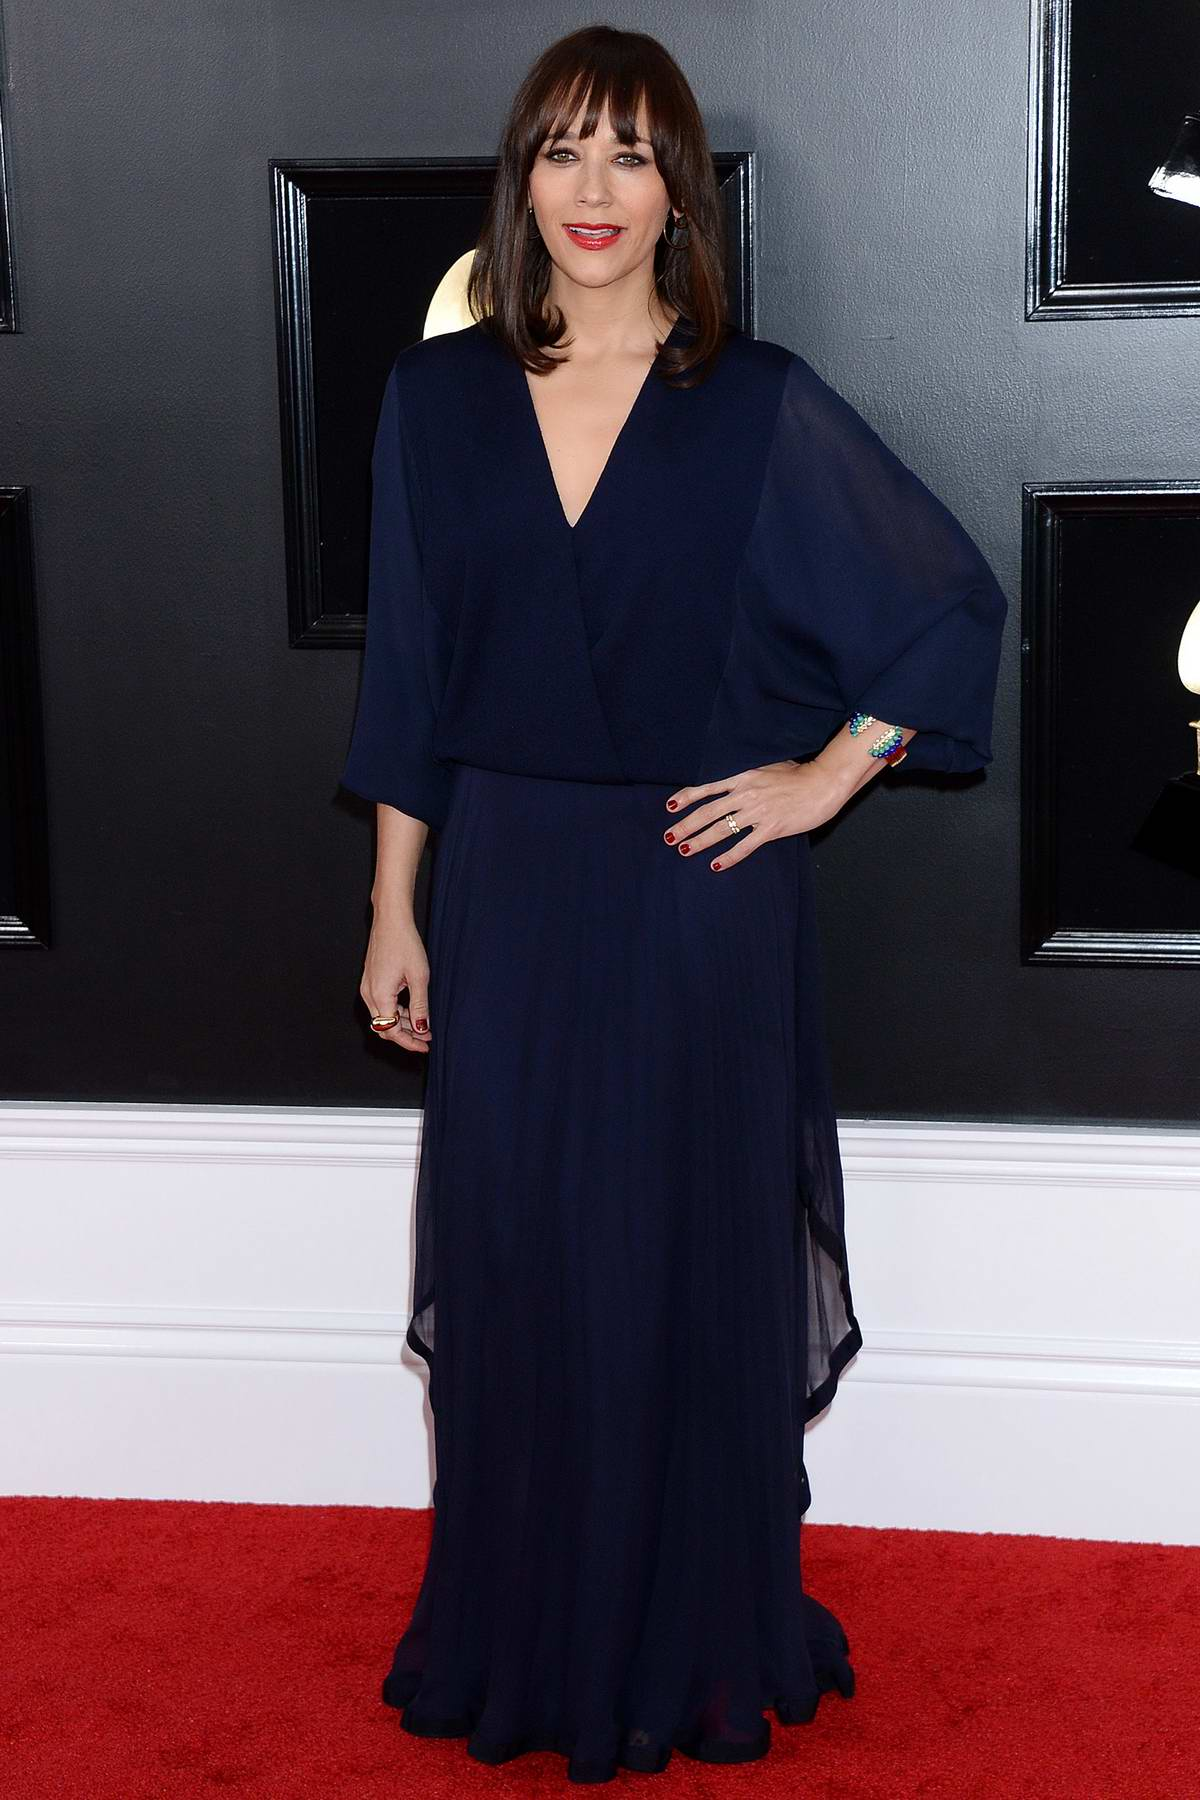 Rashida Jones attends the 61st Annual GRAMMY Awards (2019 GRAMMYs) at Staples Center in Los Angeles